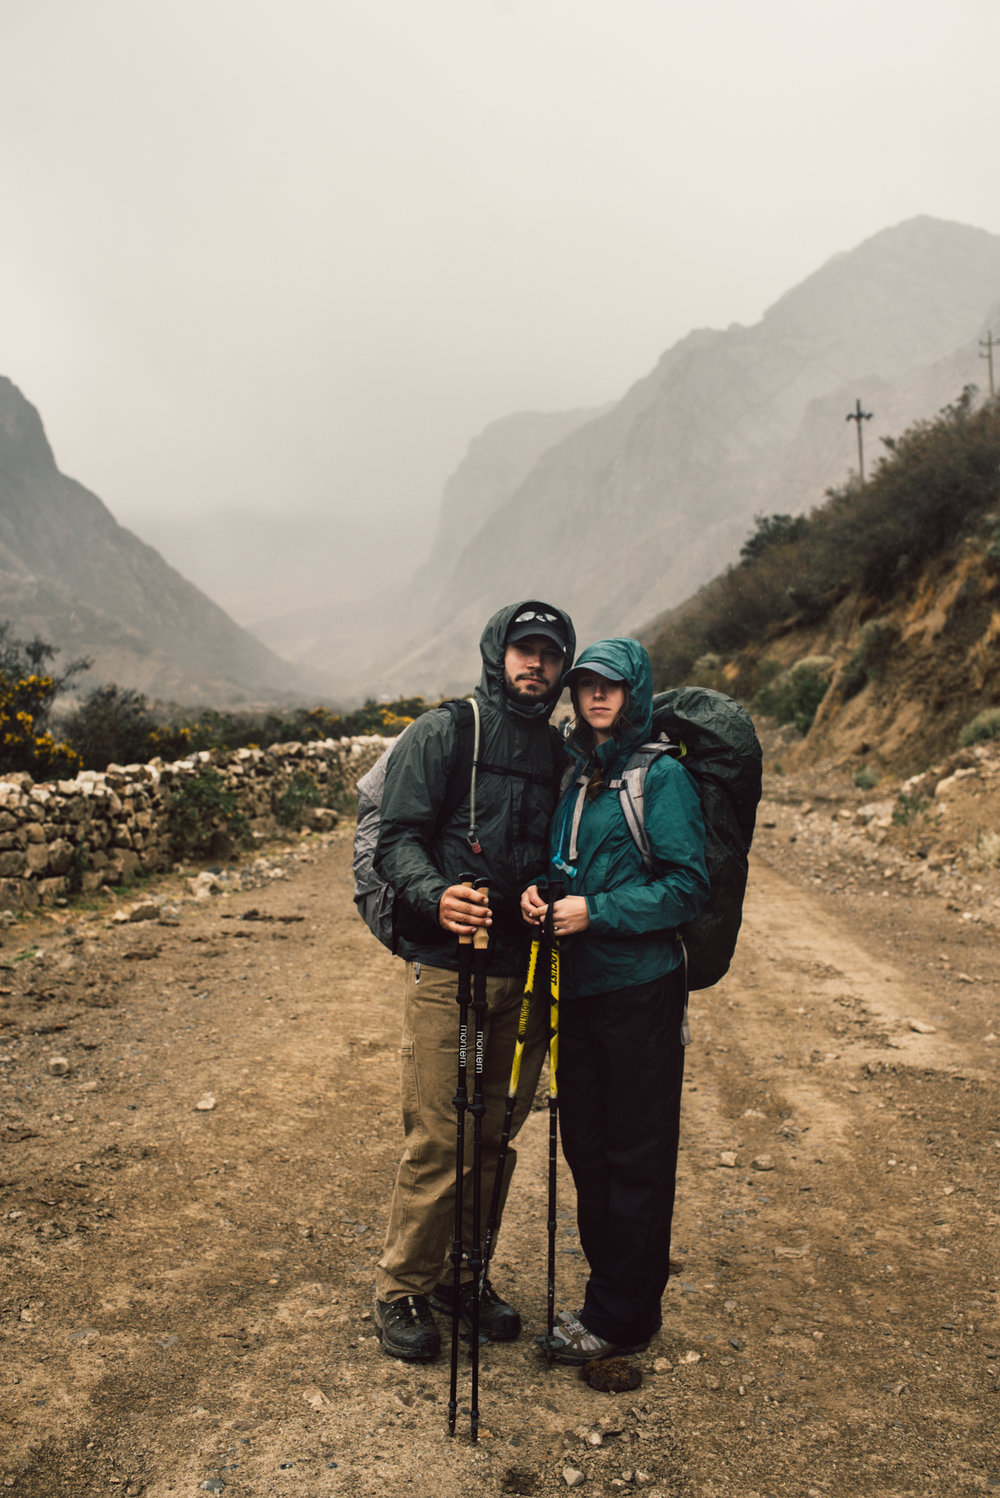 Damian and Jesse Engagement Session Huayhuash Mountain Trekking Peru_118.JPG